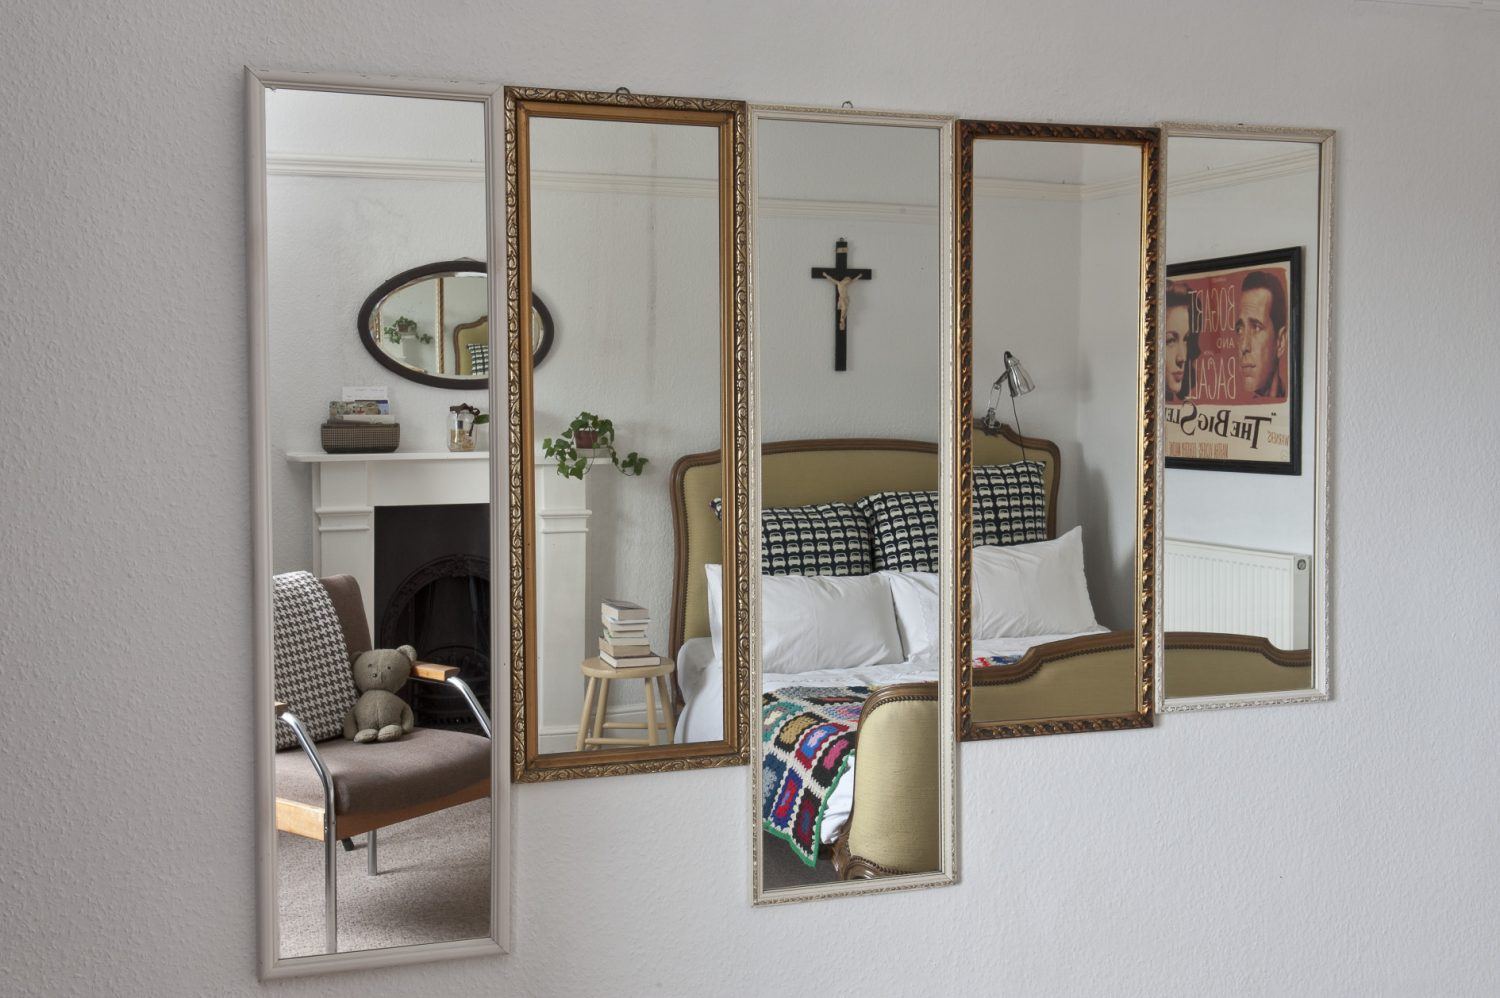 On the wall opposite there is a collection of five framed mirrors, all hung closely together so that they form a kind of panel